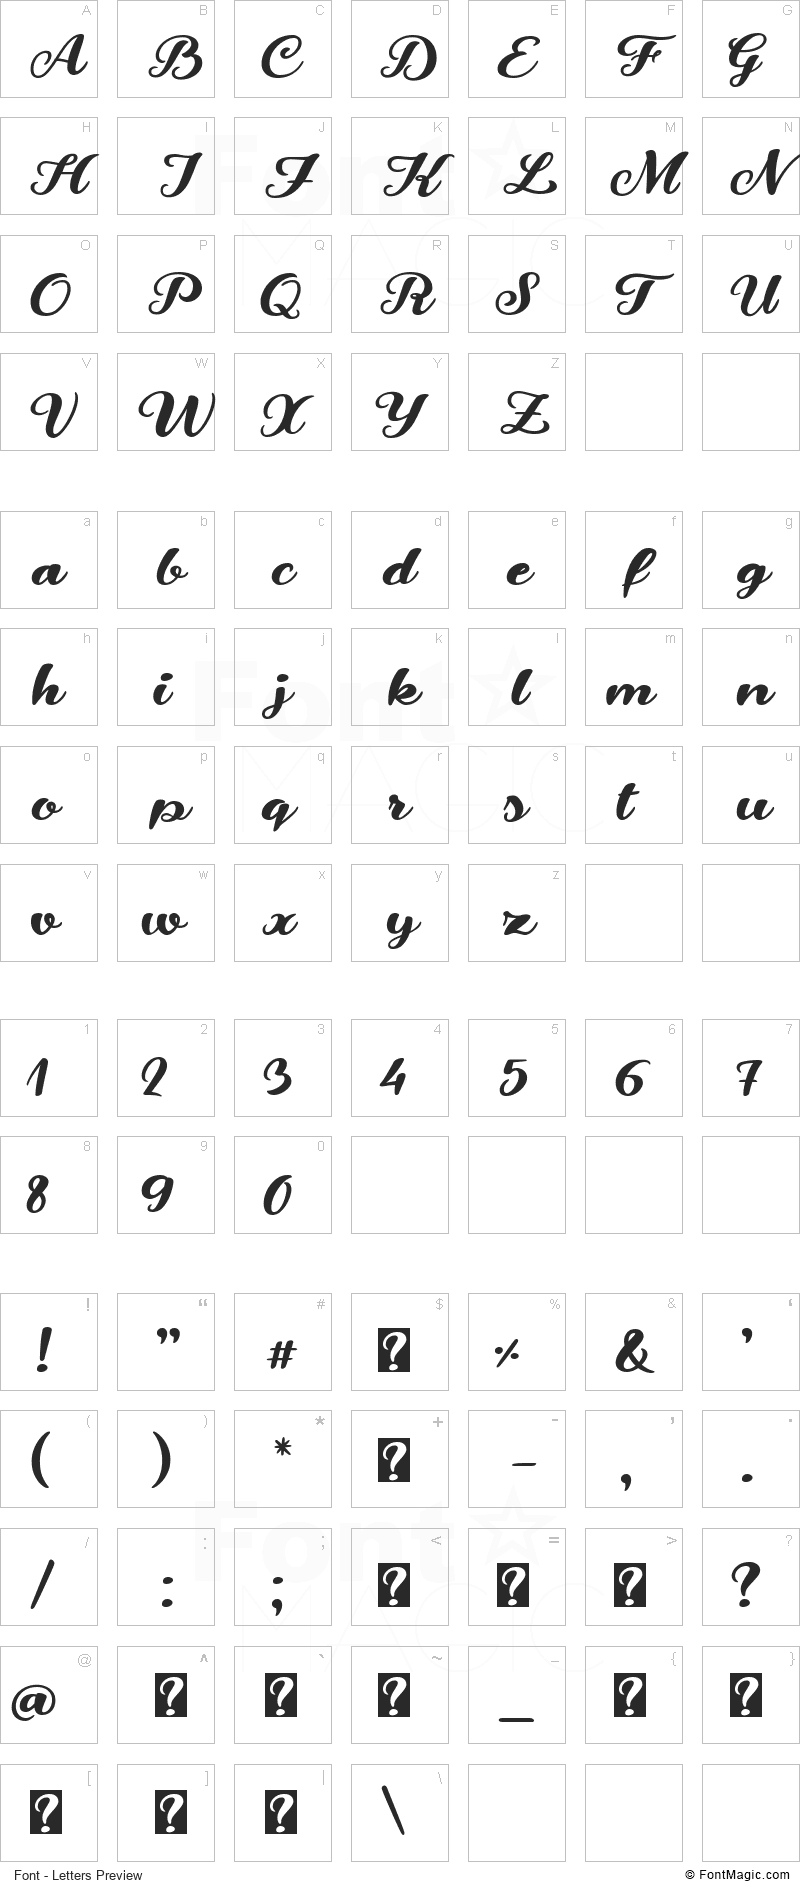 Snowman Dudes Font - All Latters Preview Chart